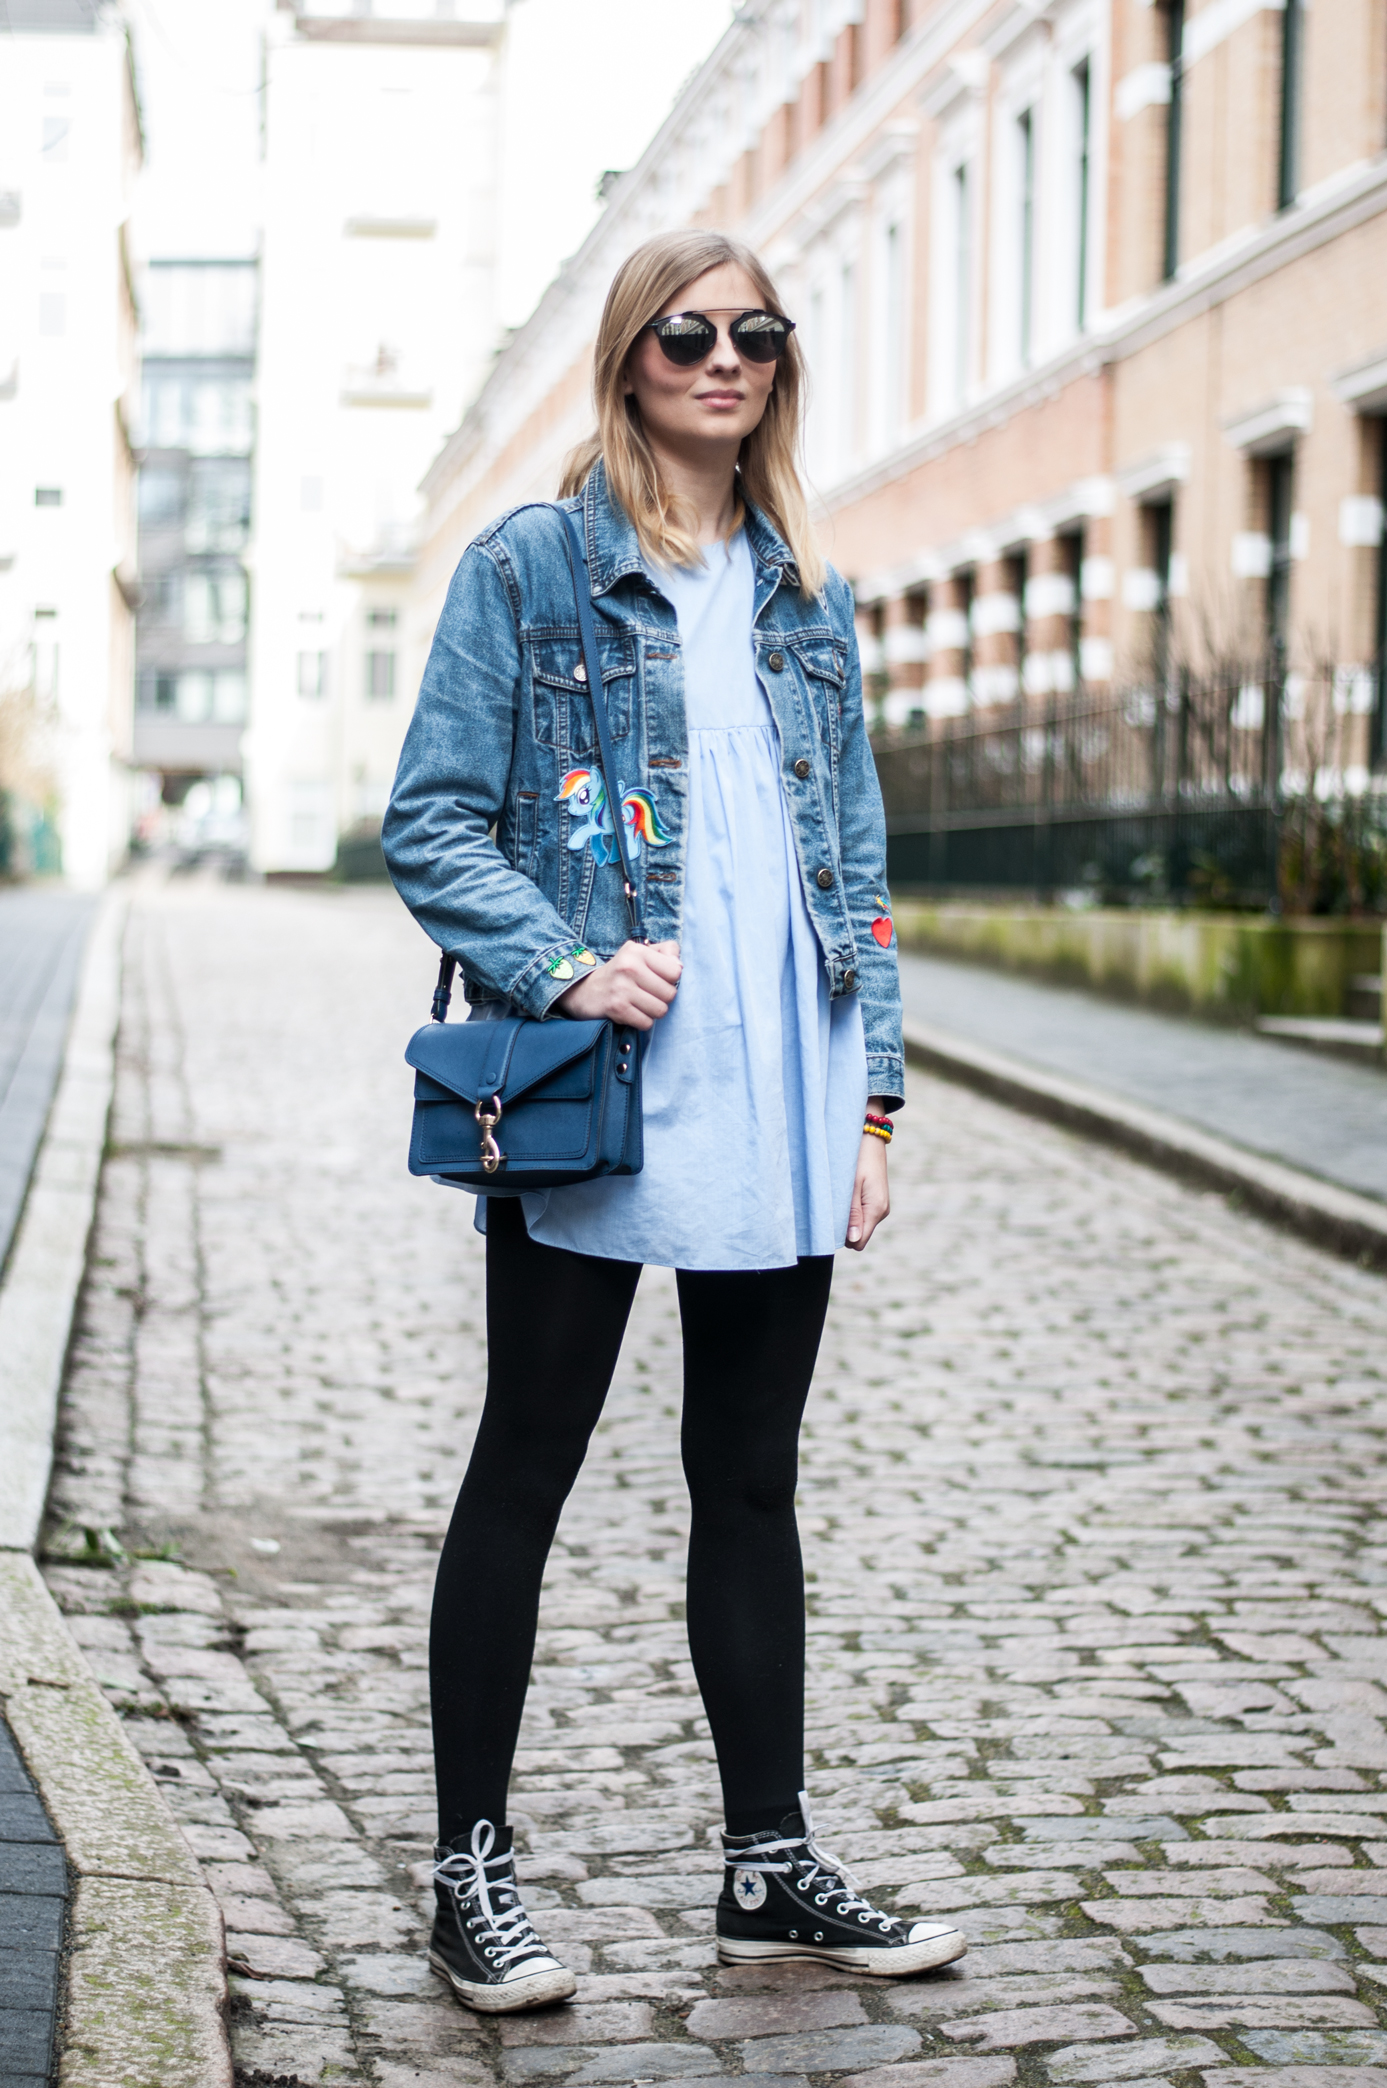 OUTFIT | Jeansjacke mit Patches